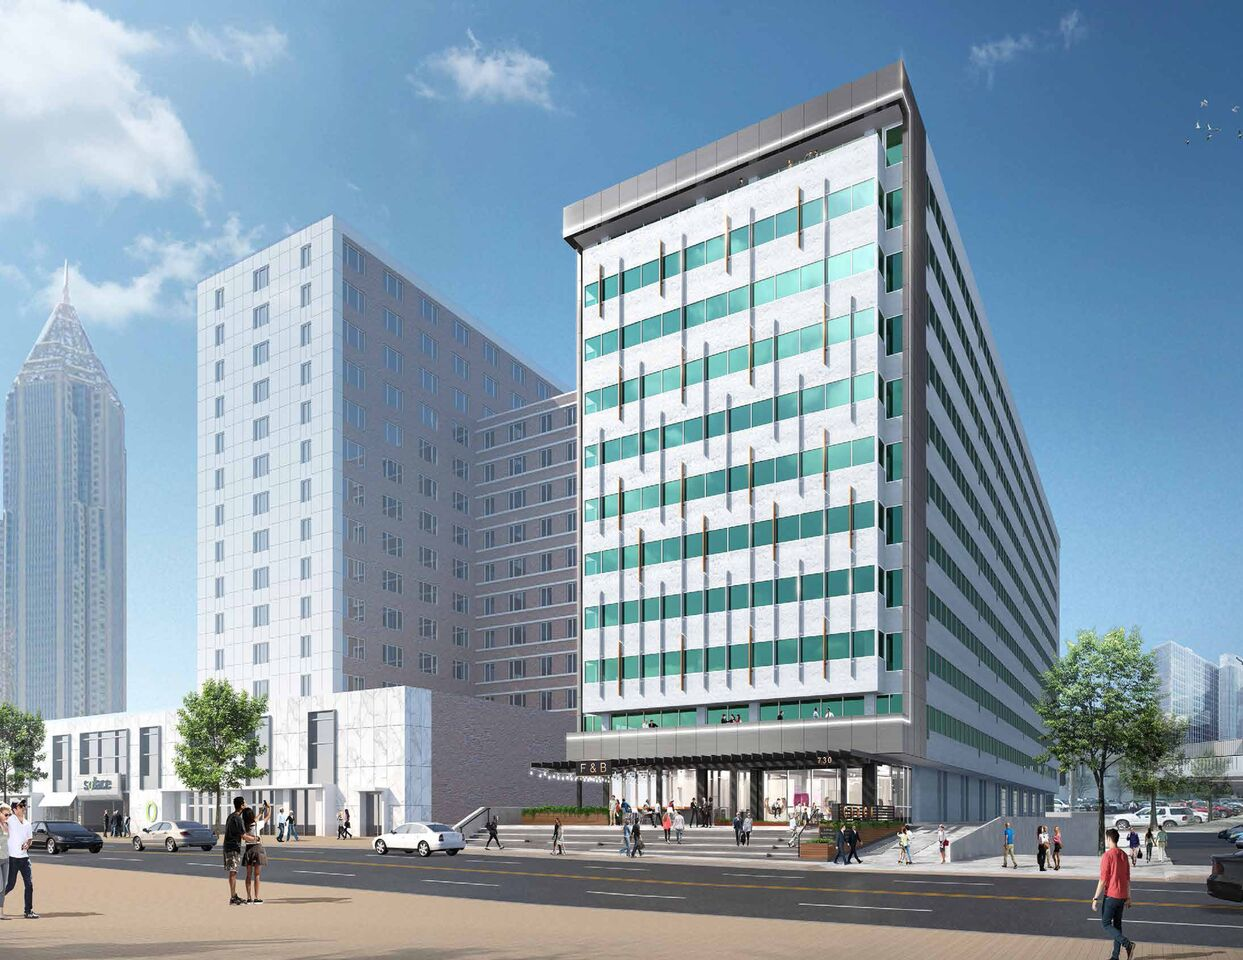 A rendering of the reimagined facade at Peachtree.